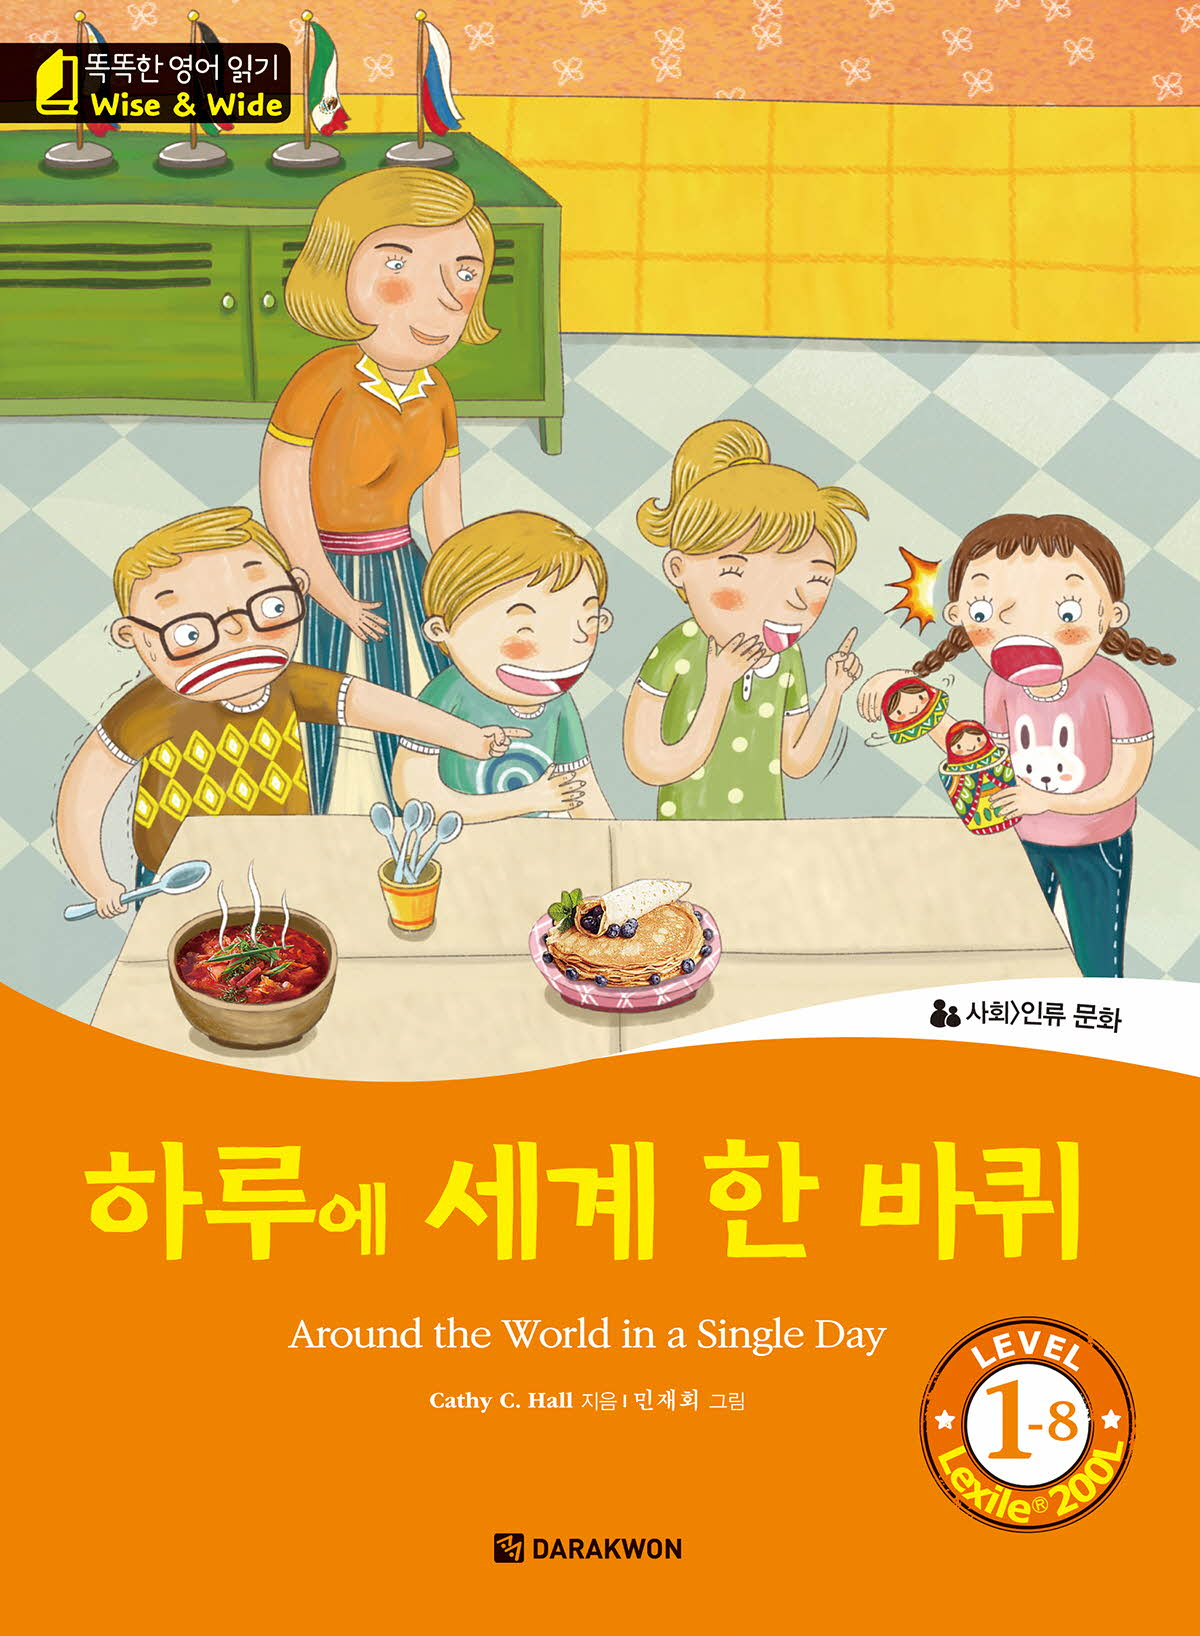 <a href='contents.php?CS_CODE=CS201803120008'>하루에 세계 한 바퀴 (Around the World in a Single Day)</a> 책표지